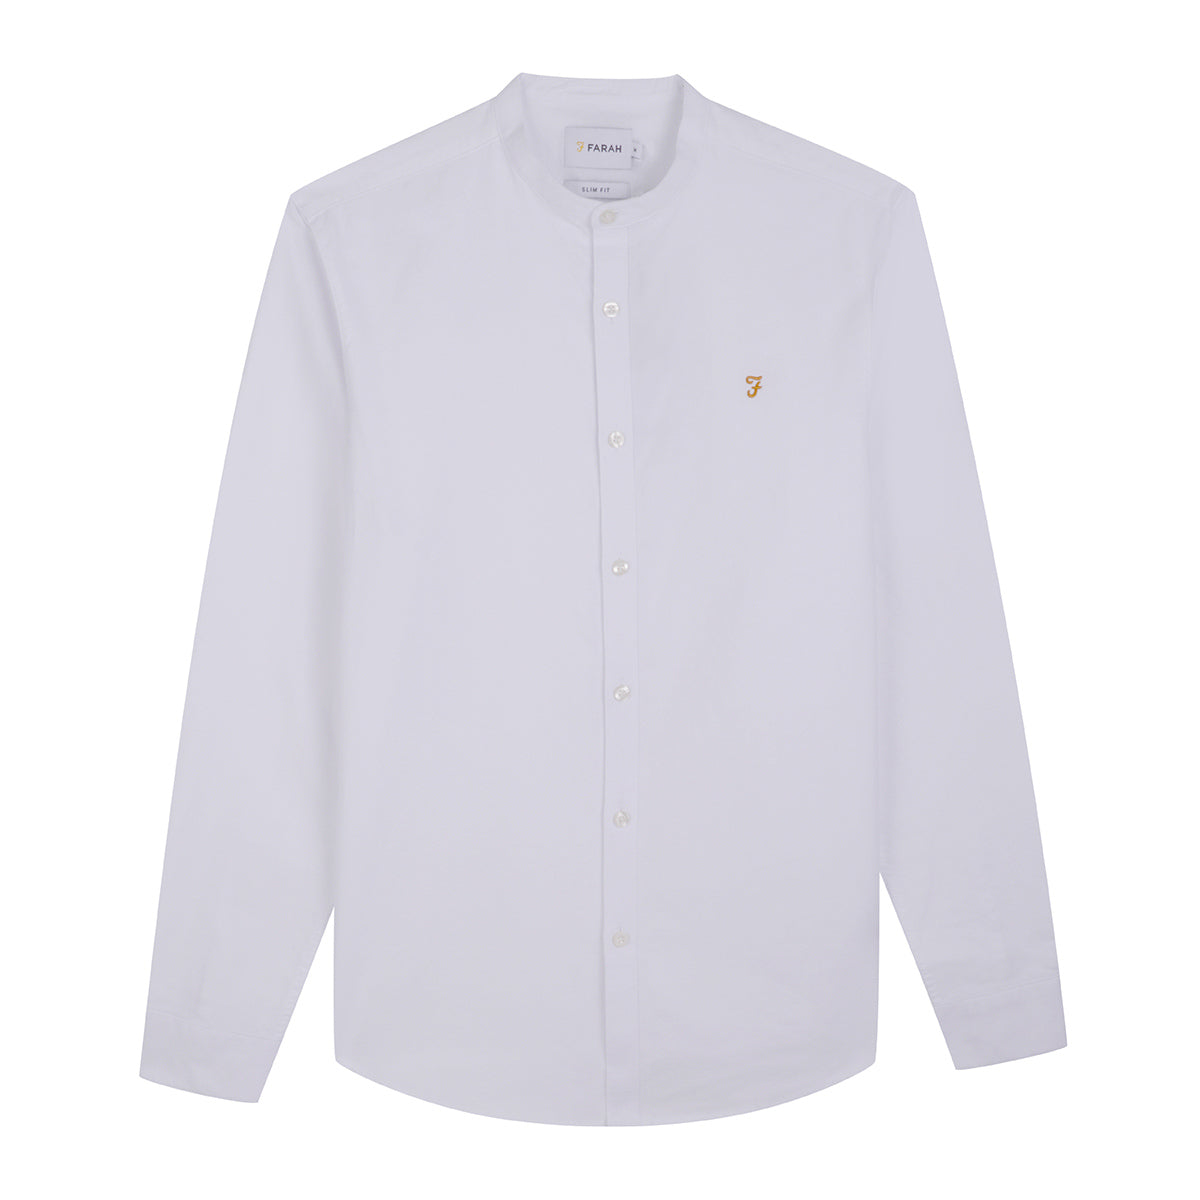 F4WF60D8 104 Farah Slim Fit Grandad Mens Shirt in White for sale Online ireland